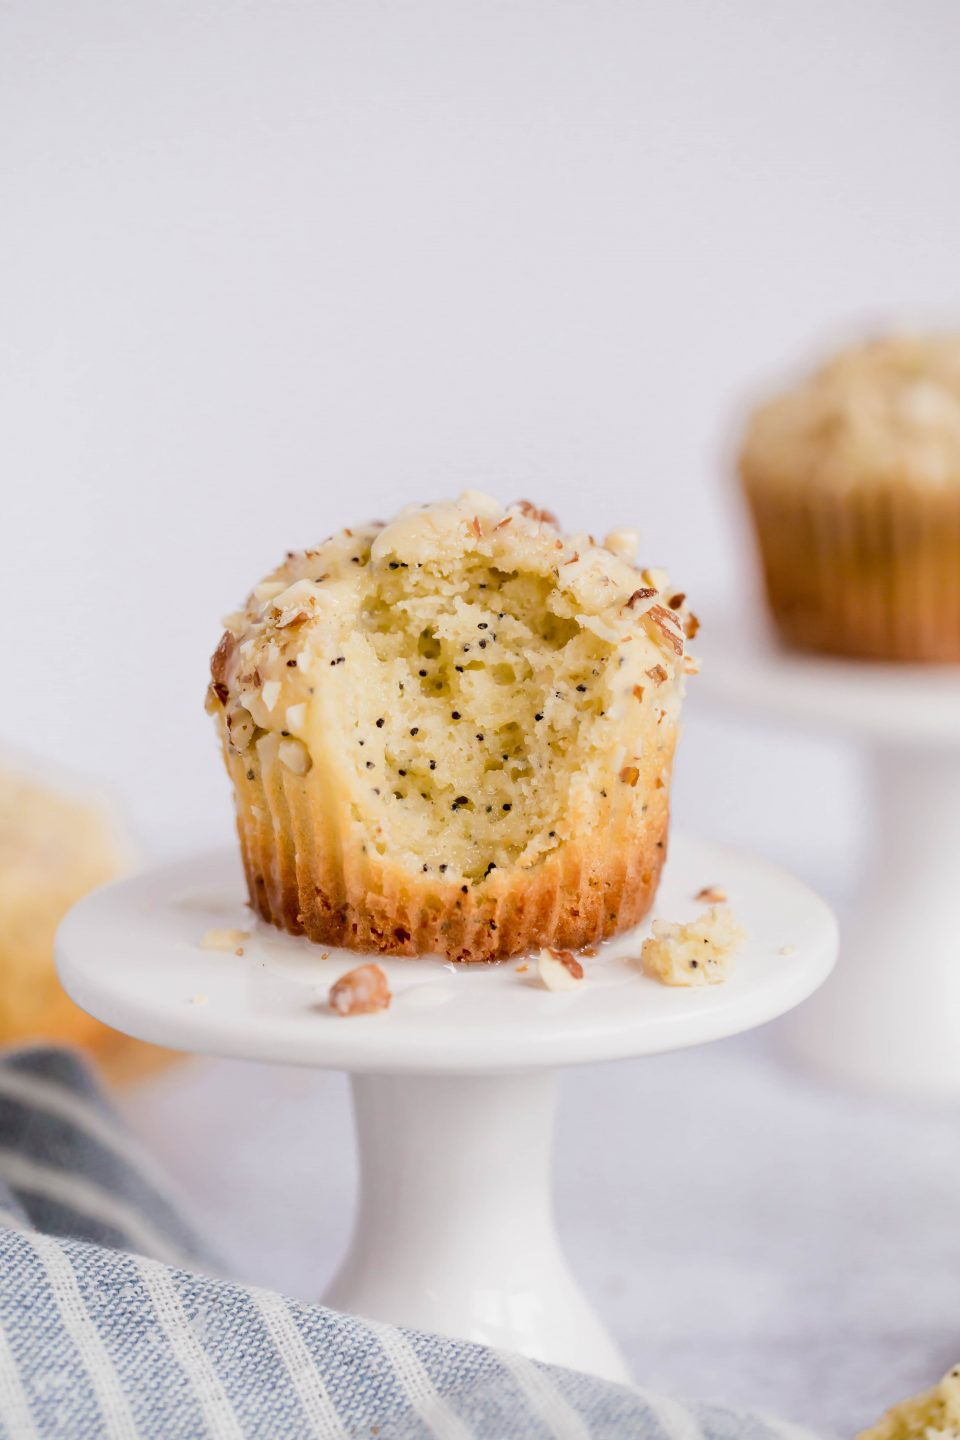 A front on shot of two gluten-free almond poppyseed muffins on small white cupcake stands. The front muffin has a large bite taken out of the top front.